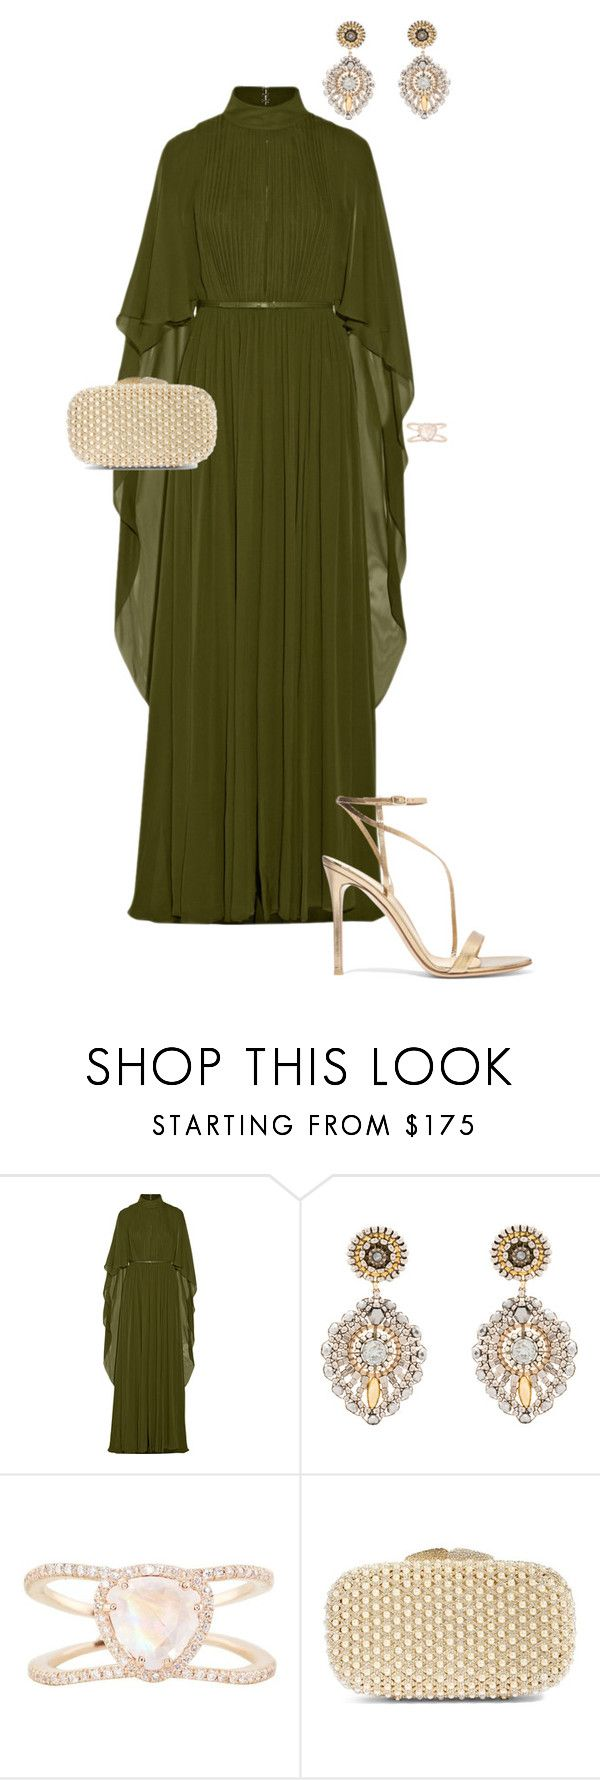 """Golden Globes"" by ccoss on Polyvore featuring Elie Saab, Miguel Ases, Luna Skye, Glint and Gianvito Rossi"